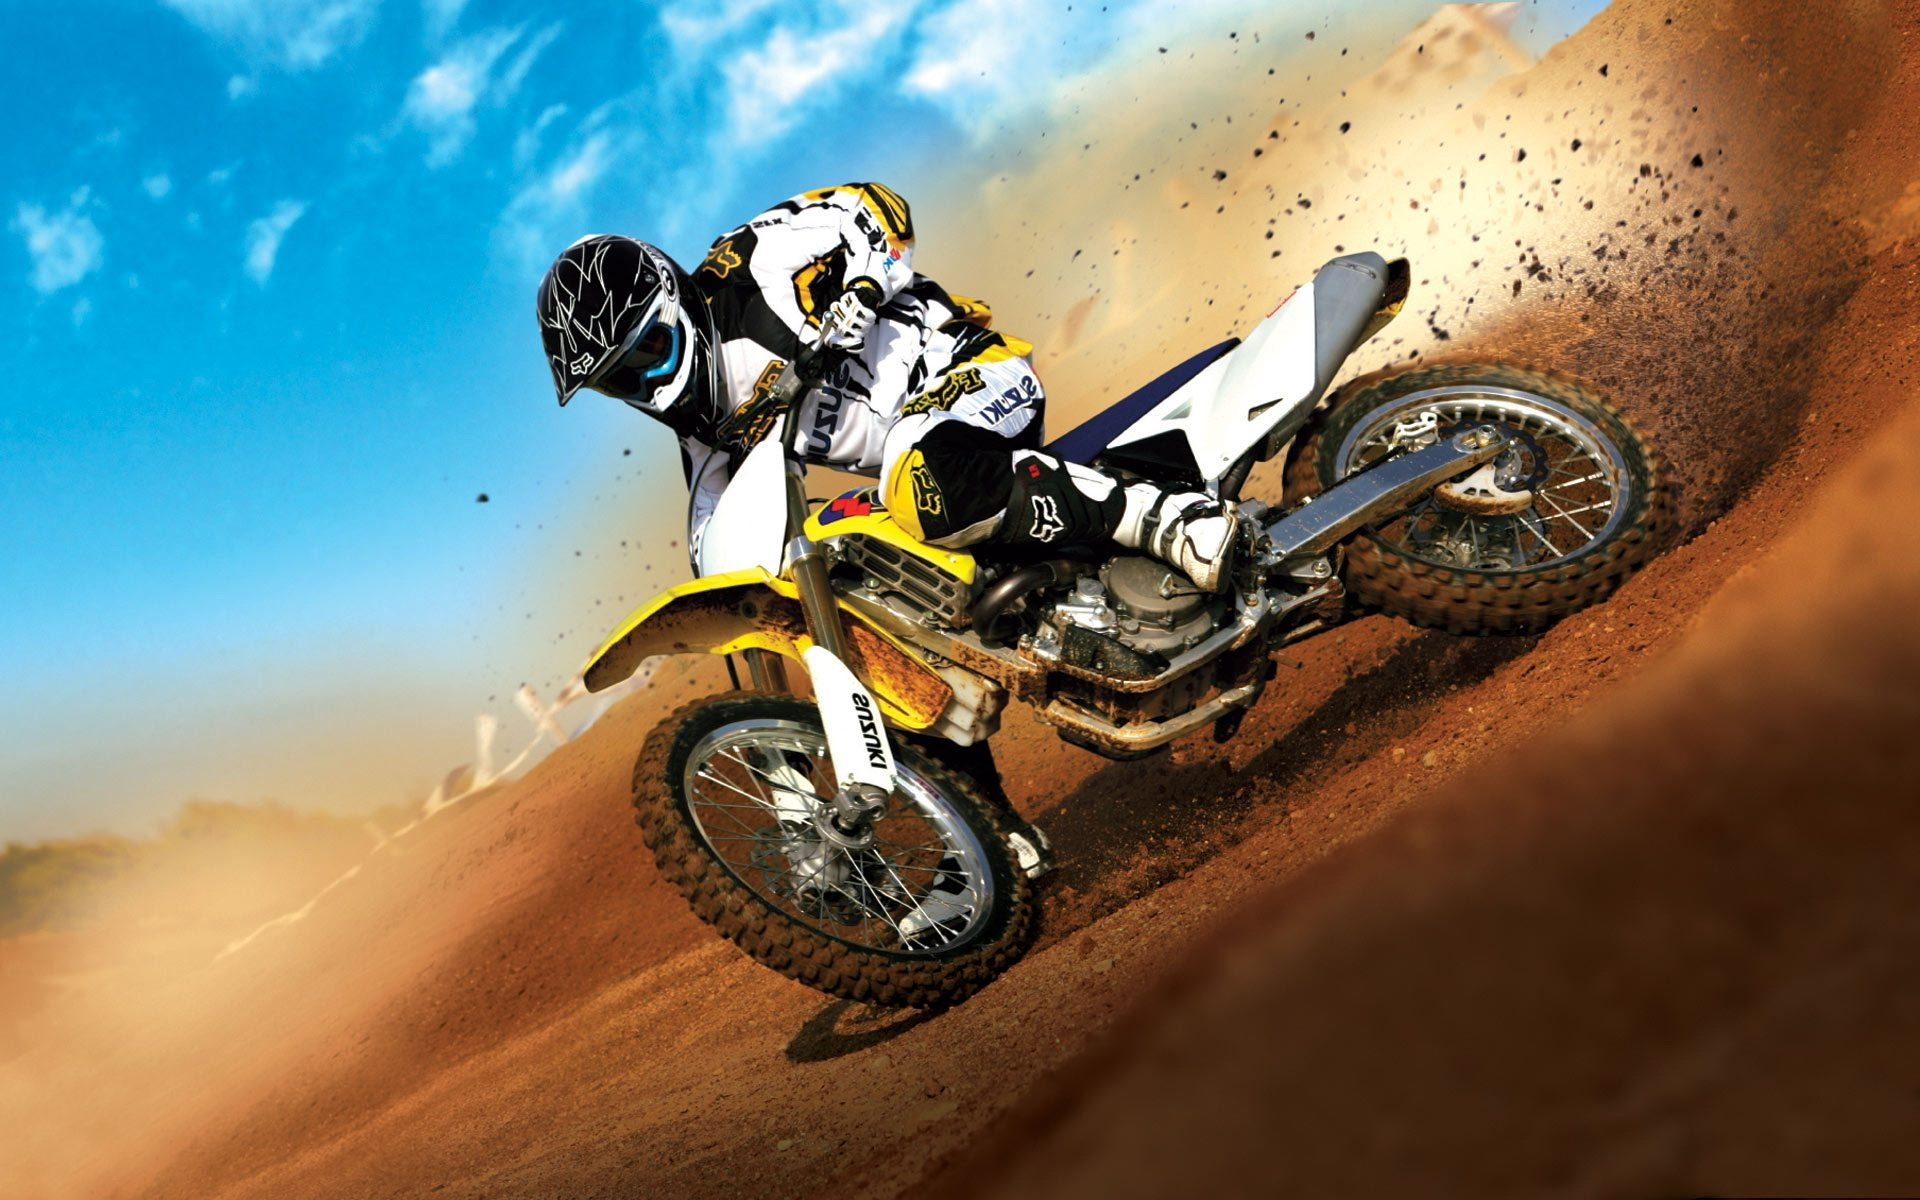 42 ] Motocross Track Wallpaper On WallpaperSafari